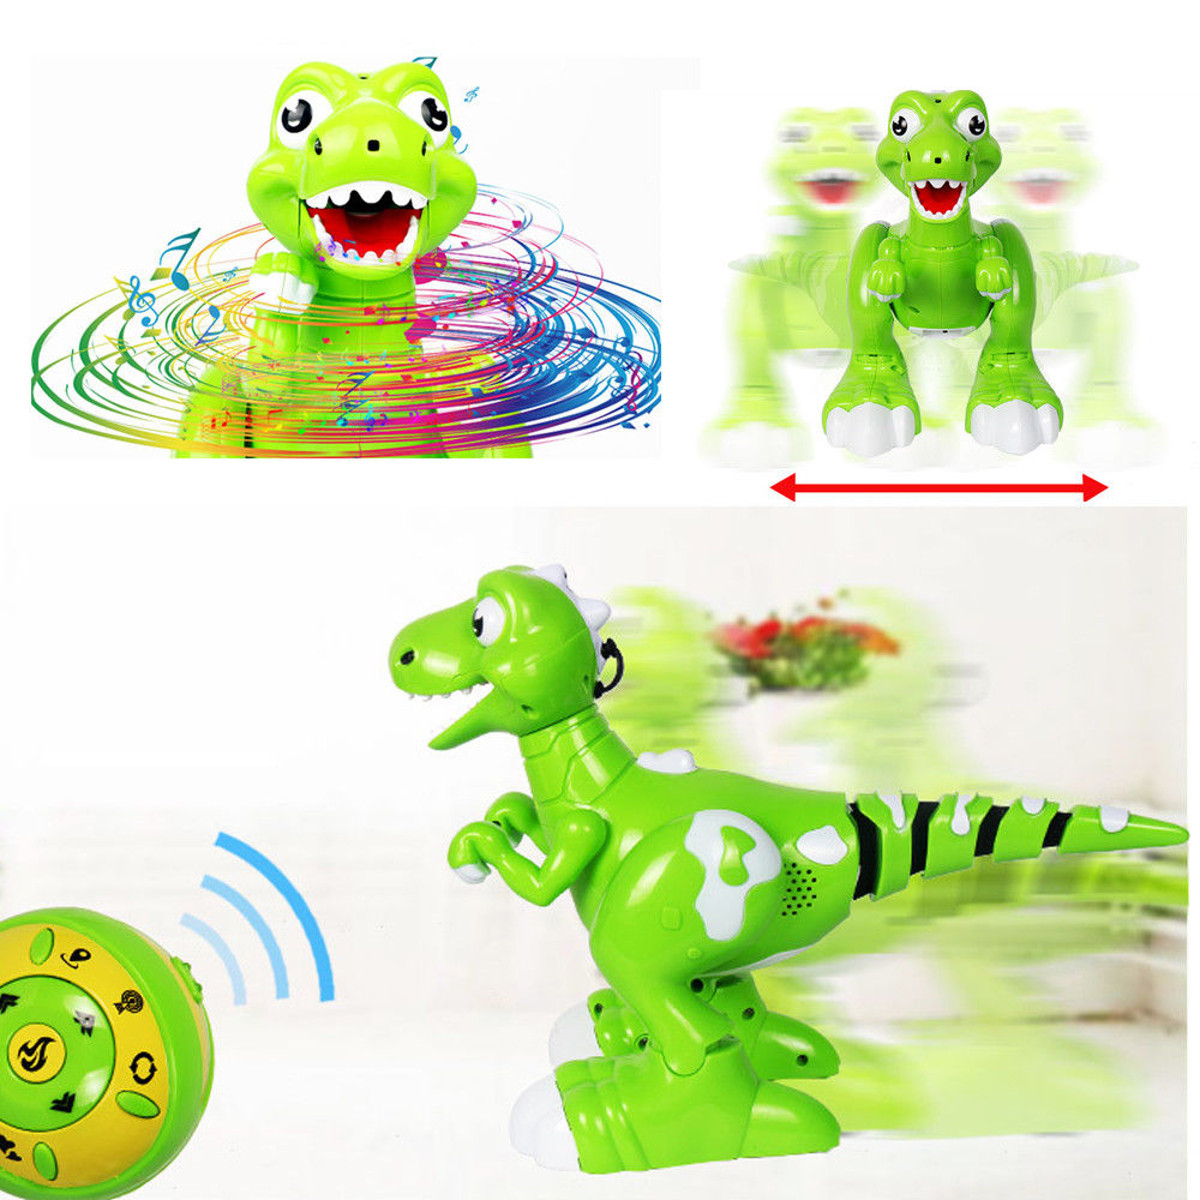 Robot Mist Spray Dinosaur Cute RC Toy Remote Control Interactive Kids Gifts